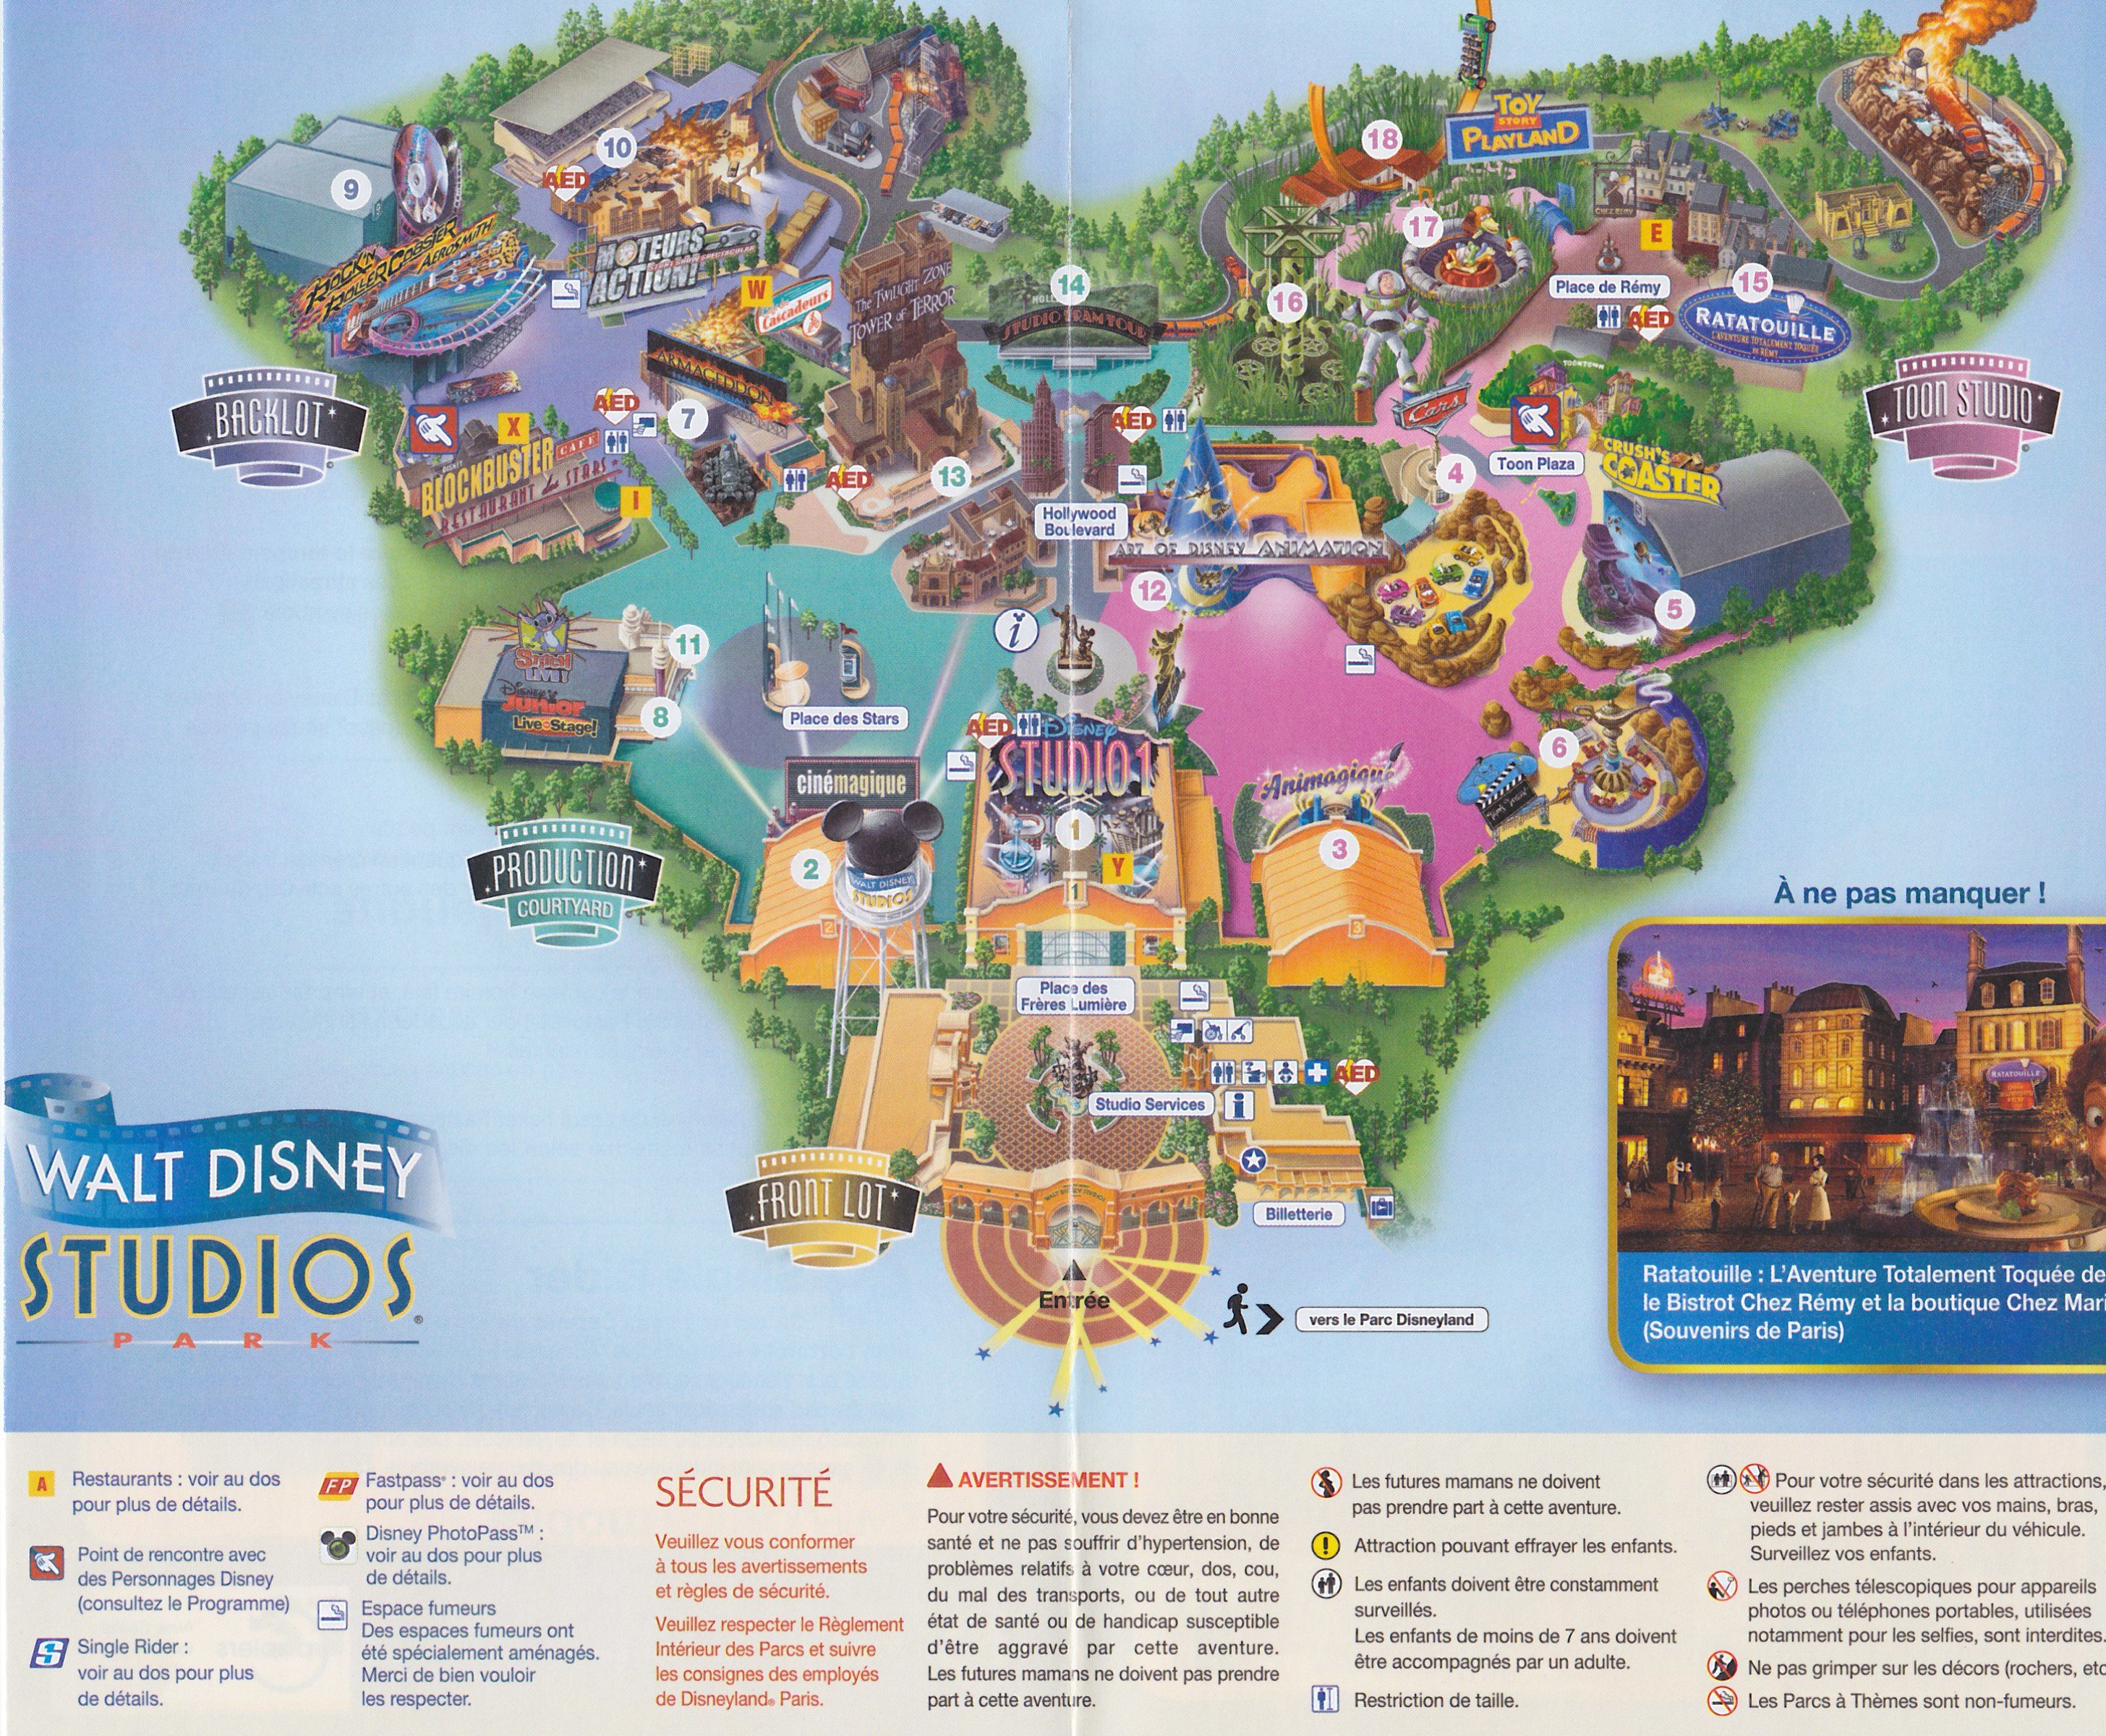 My Visit To Disneyland Paris What You Need To Know Carries Getaways - What to see in paris map